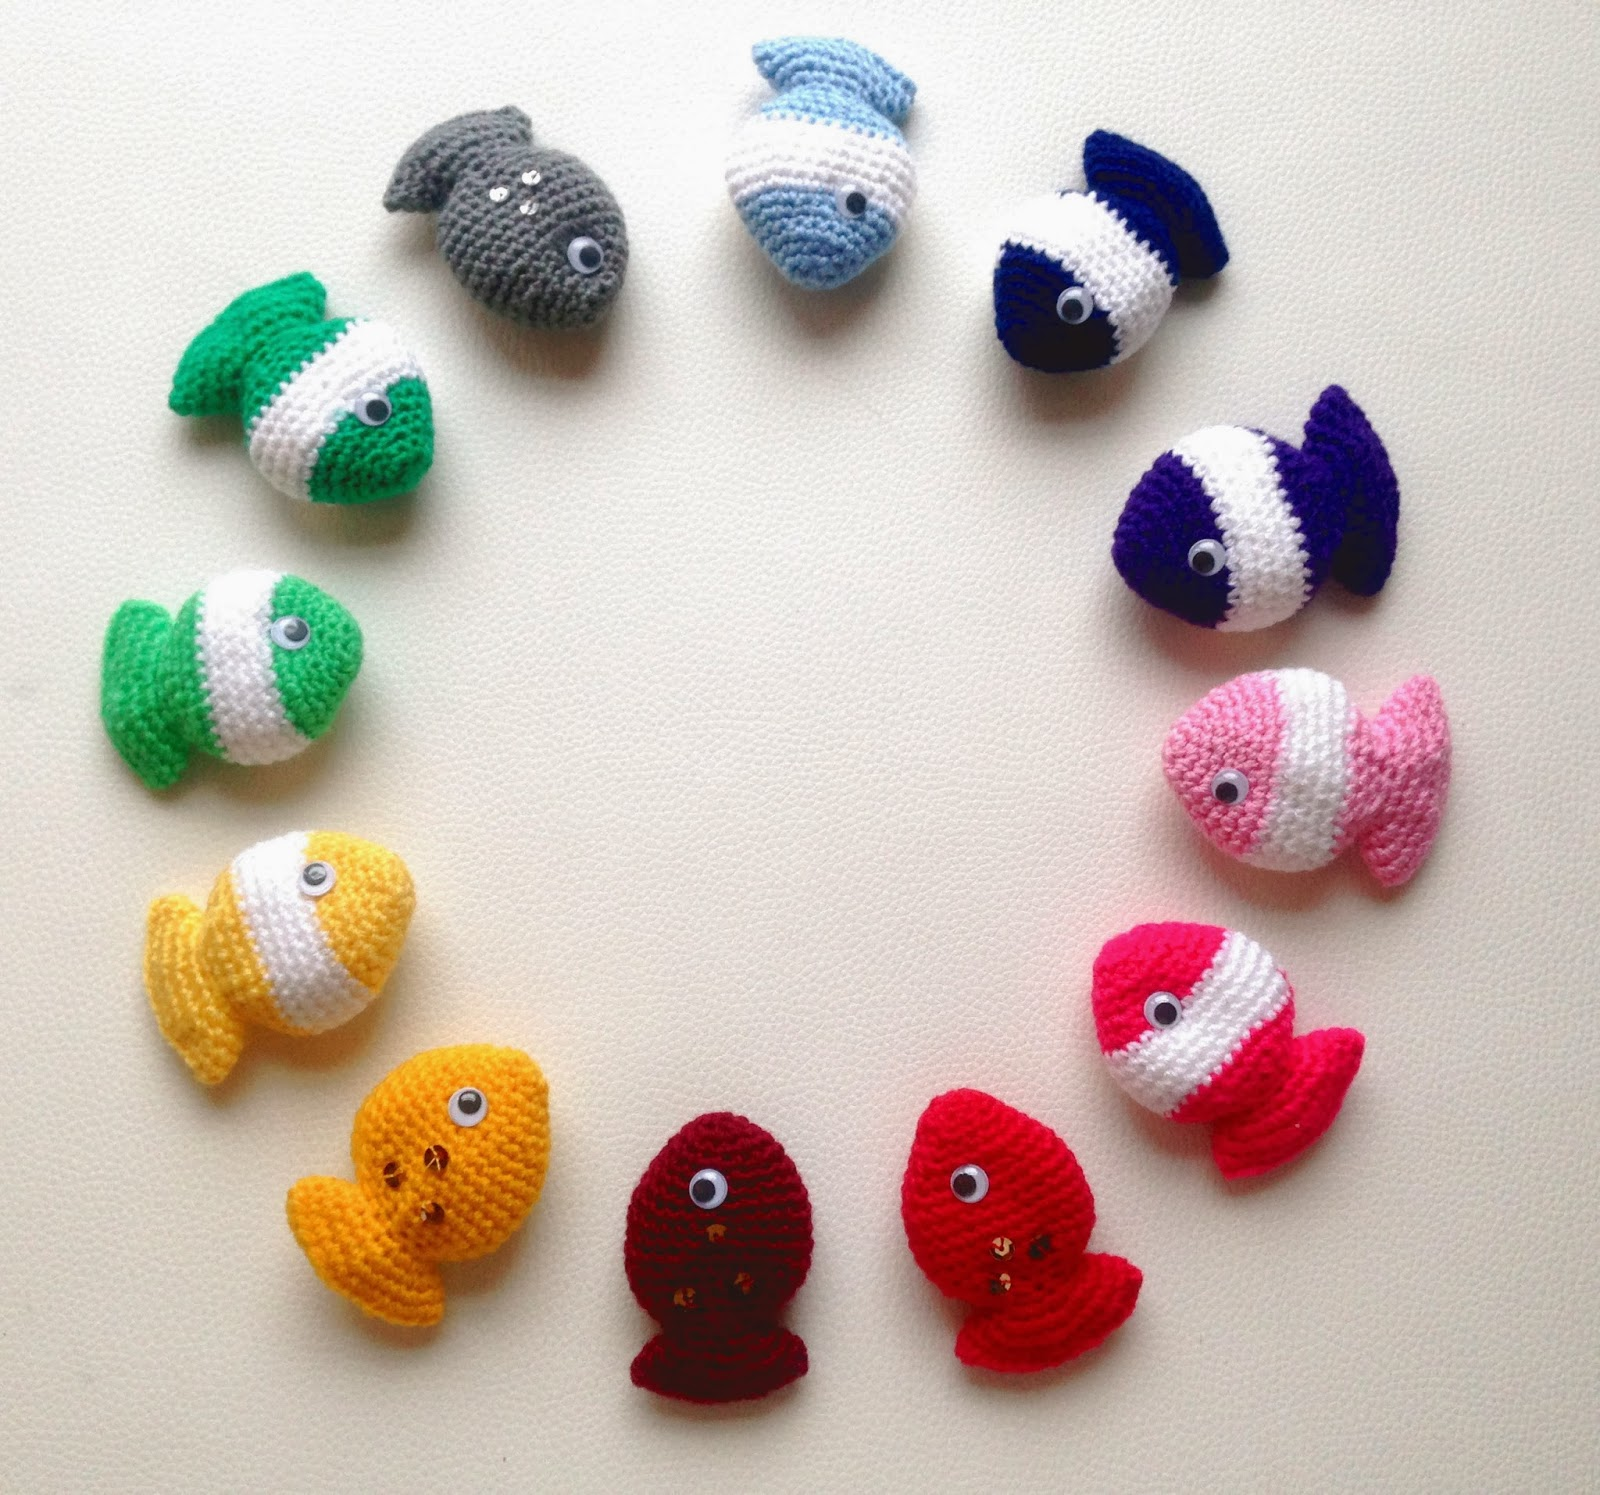 Free Crochet Pattern For Small Fish : Lily Razz: Fish Candy - Free crochet pattern